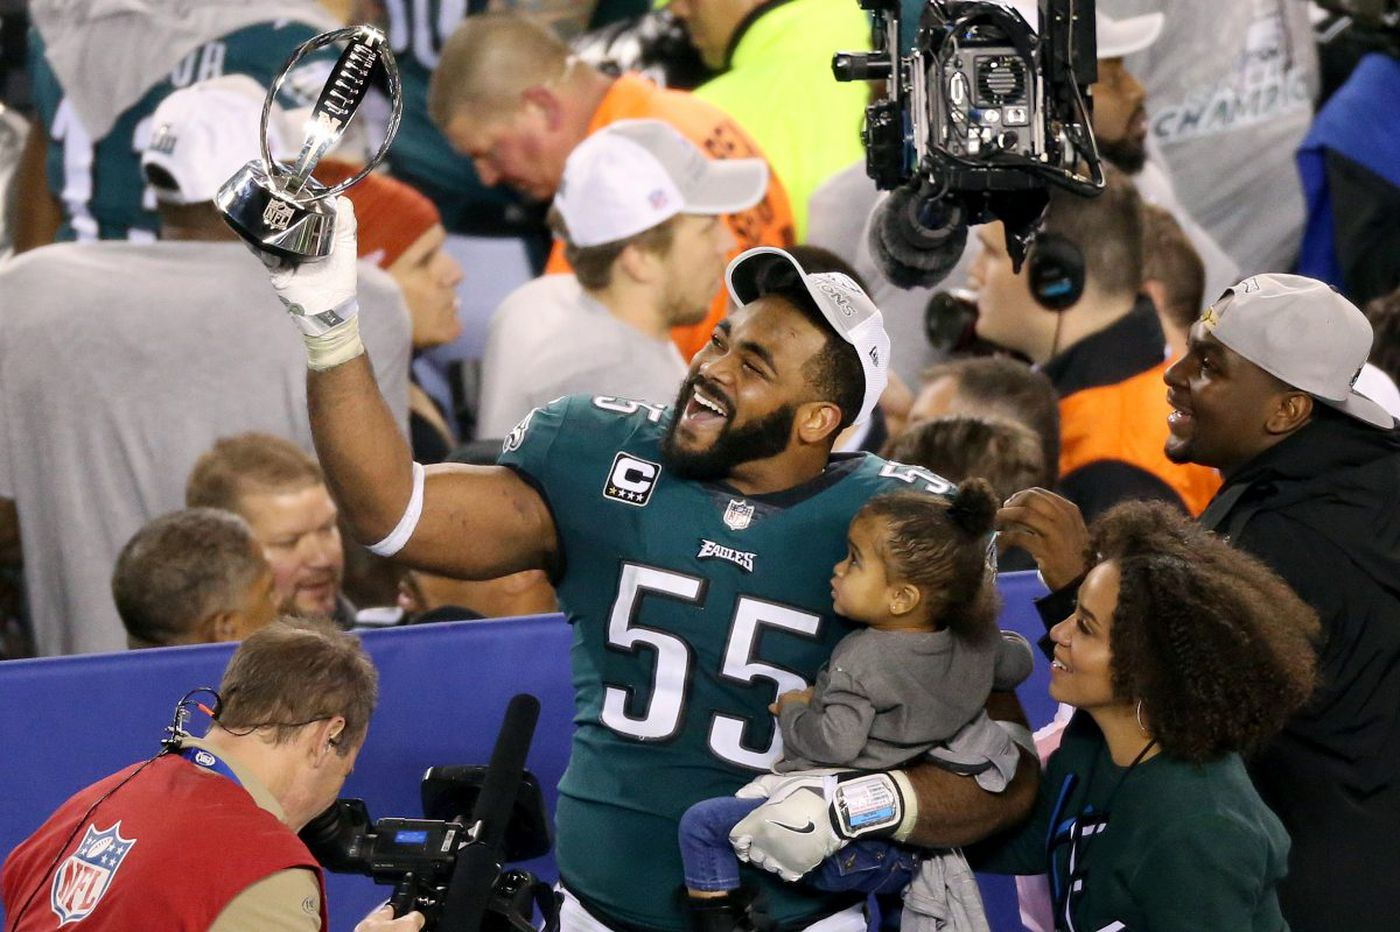 Eagles-Vikings: Timeline of the NFC championship game